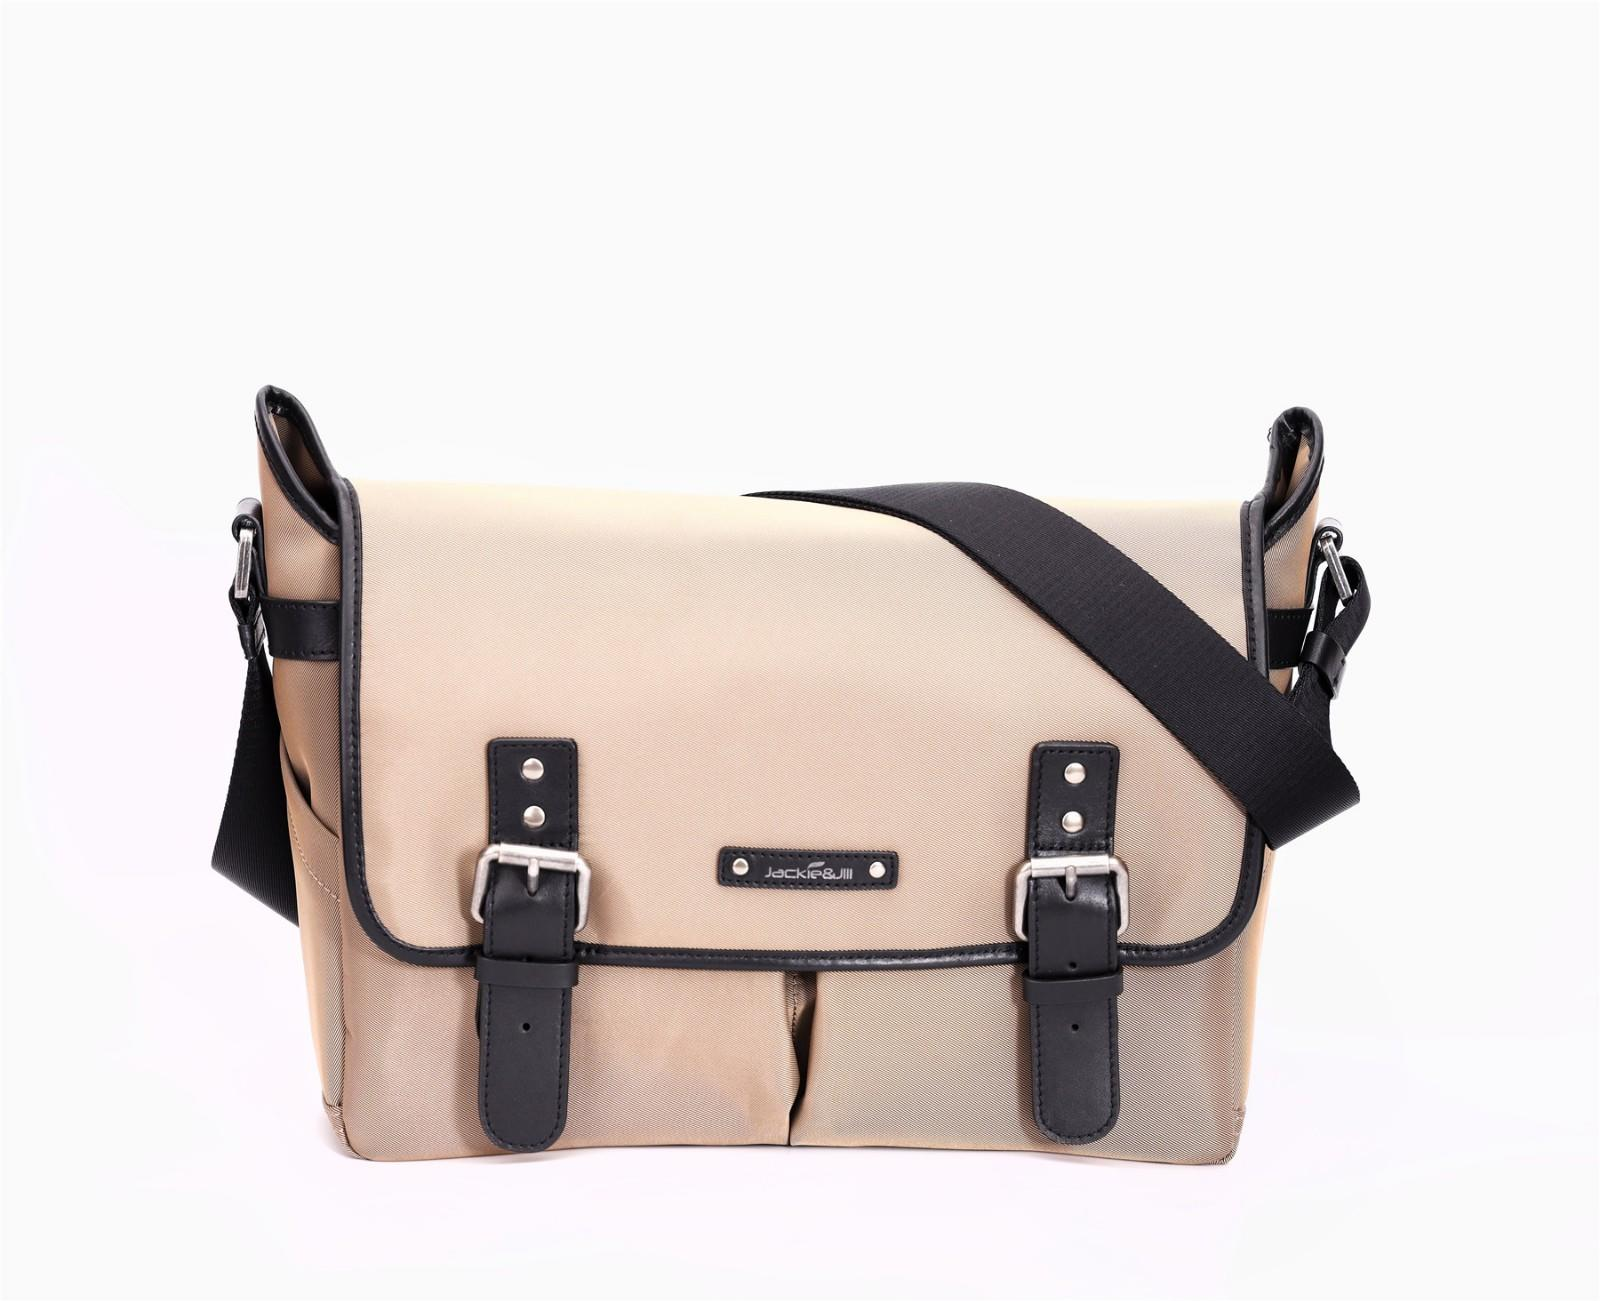 genuine leather trendy messenger bag supplier for women GF bags